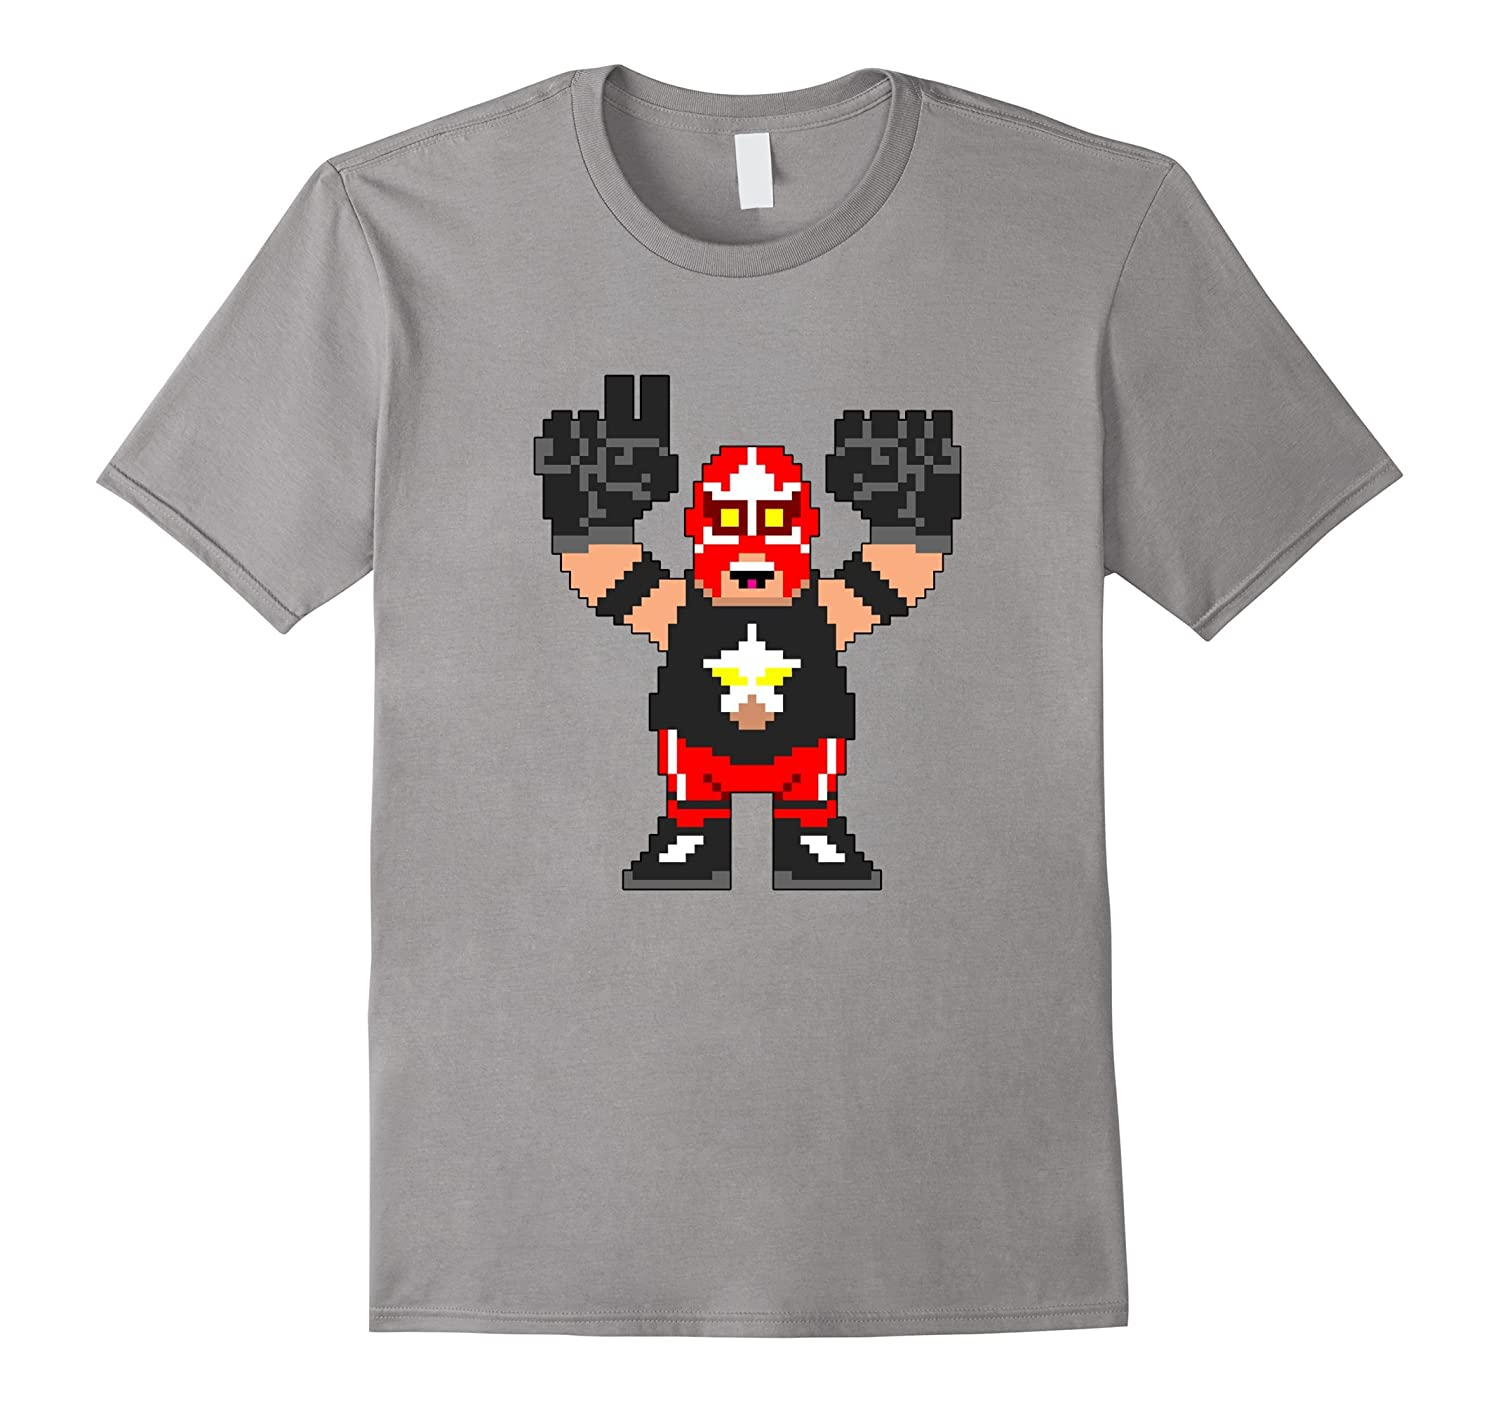 8 Bit Wrestler Big Train Wrestling Retro Gaming T-Shirt-TD